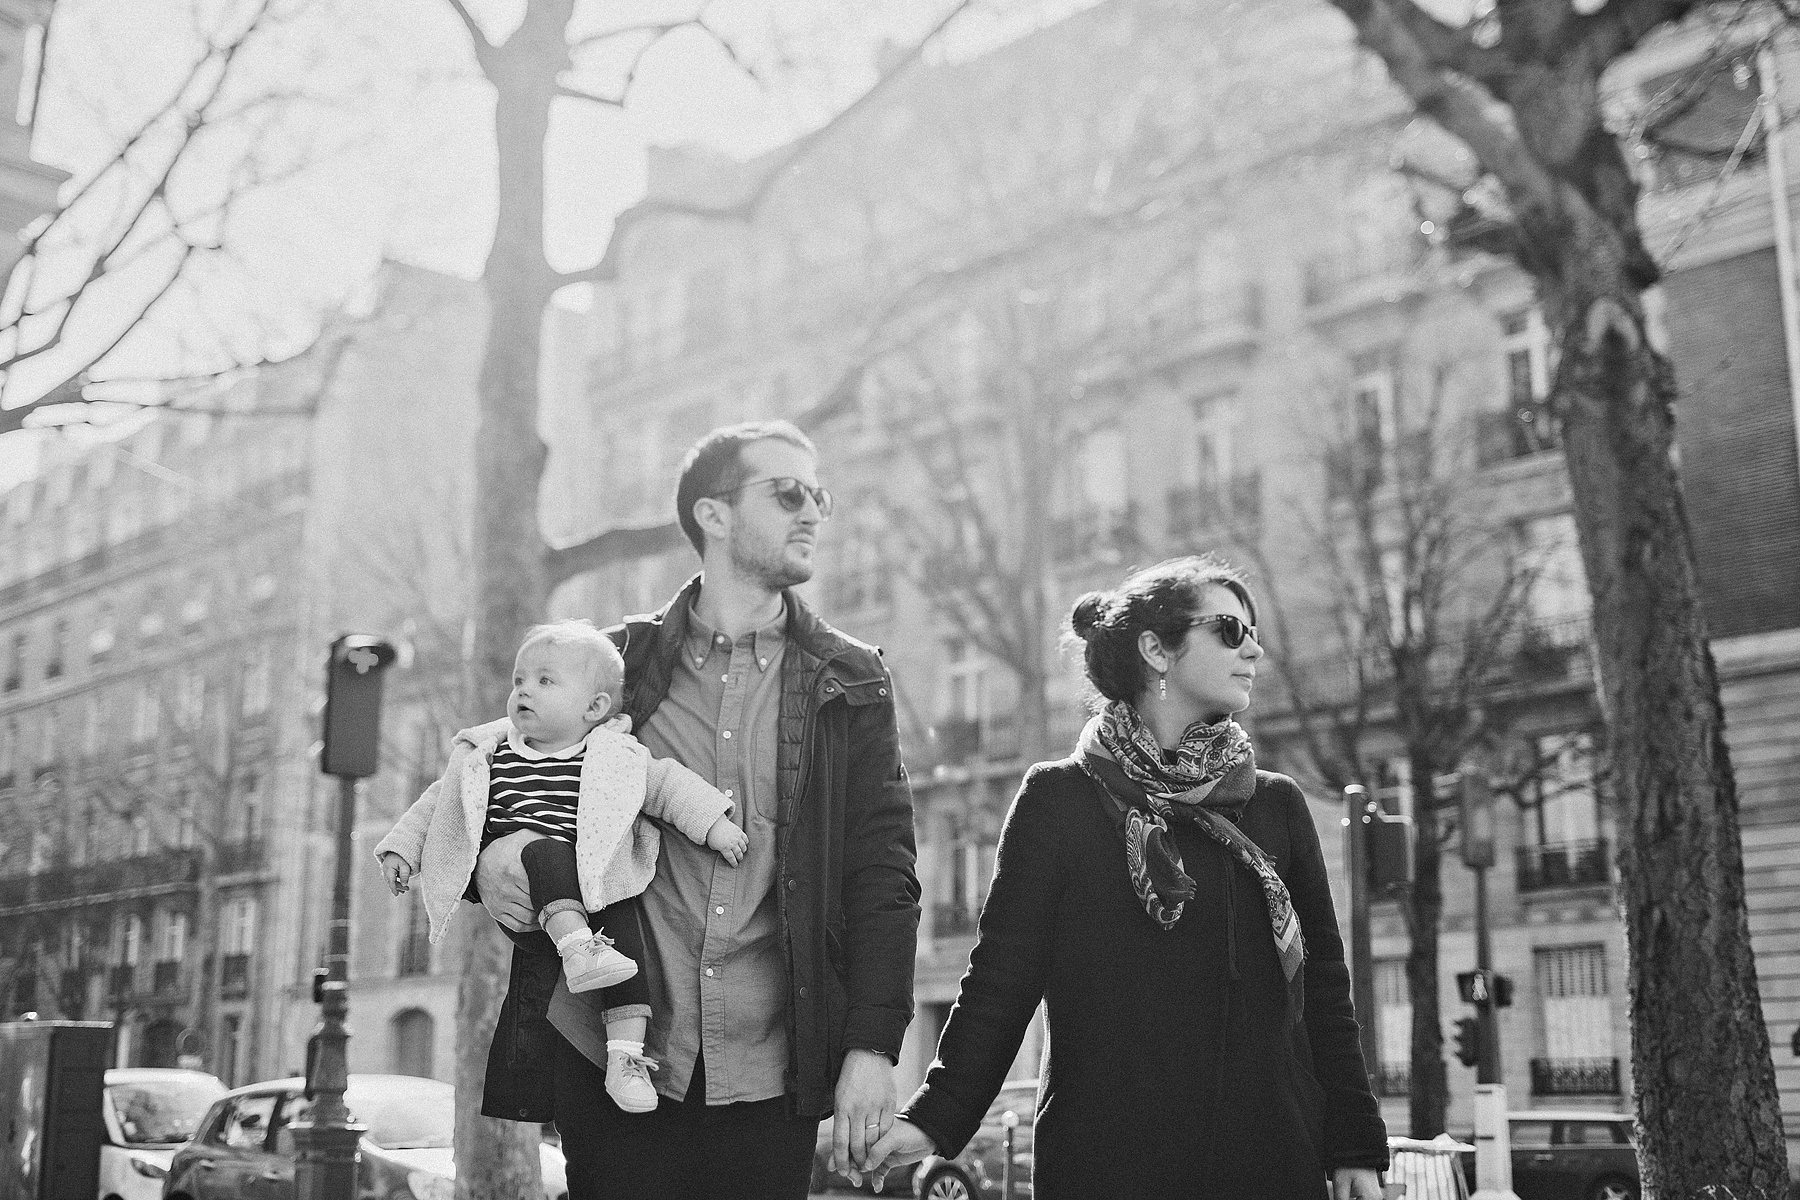 Family Photoshoot Paris France Destination Wedding Photographer,